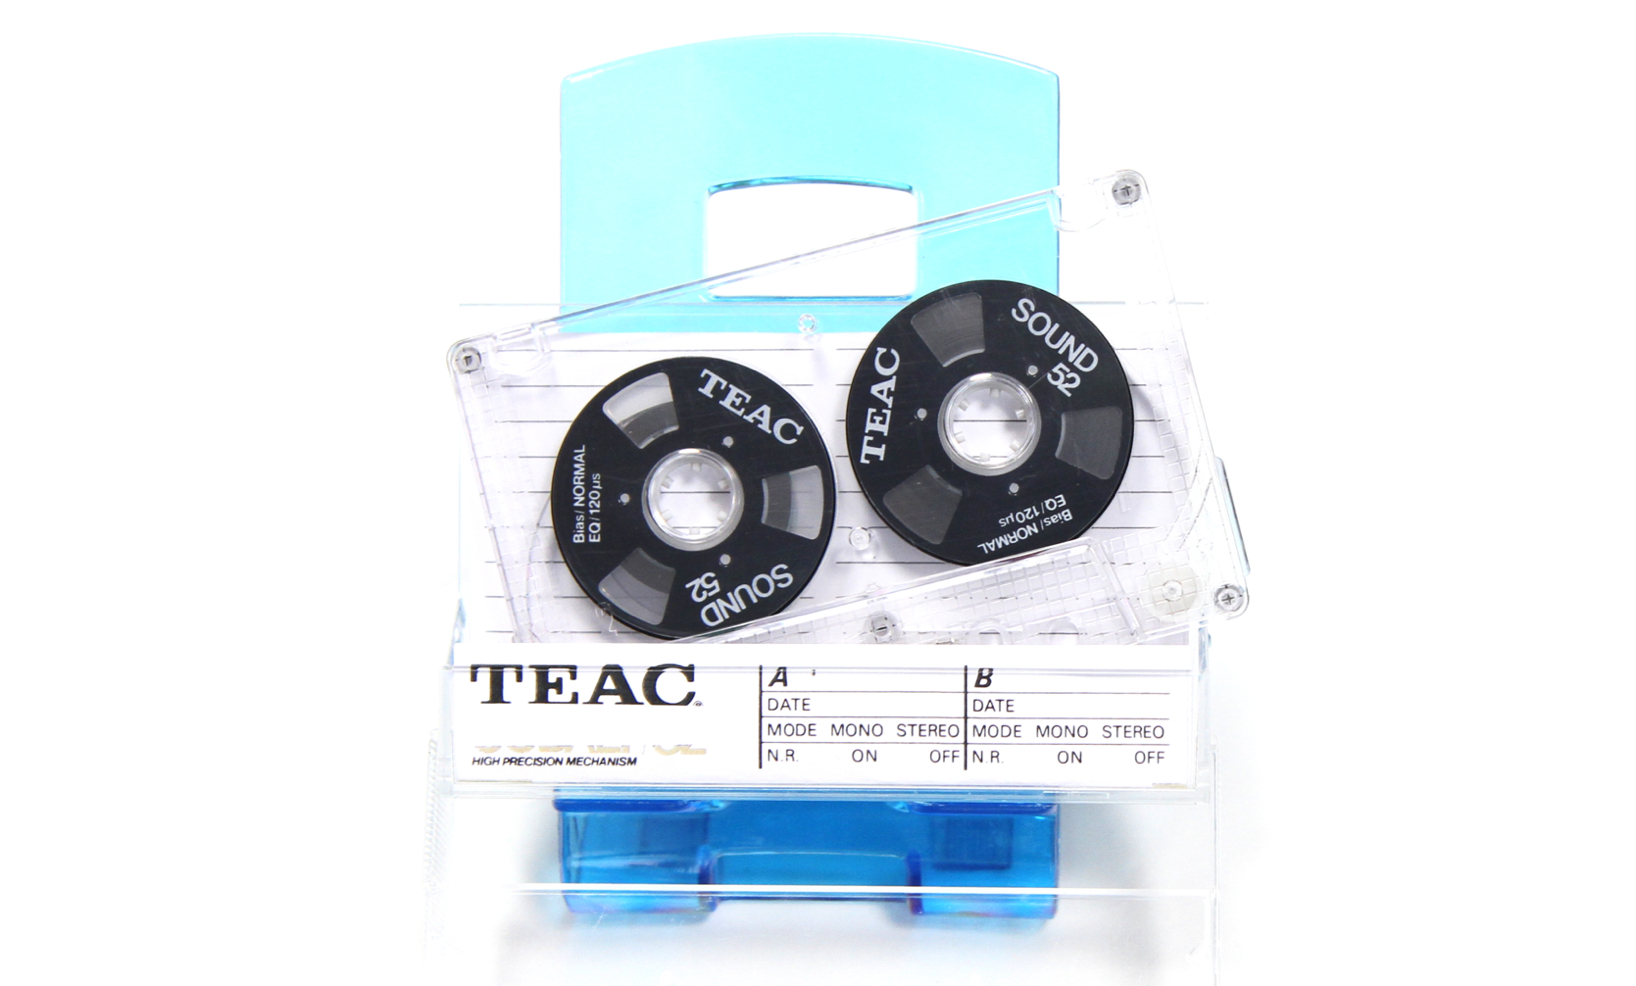 TEAC Sound 52 Reel To Reel